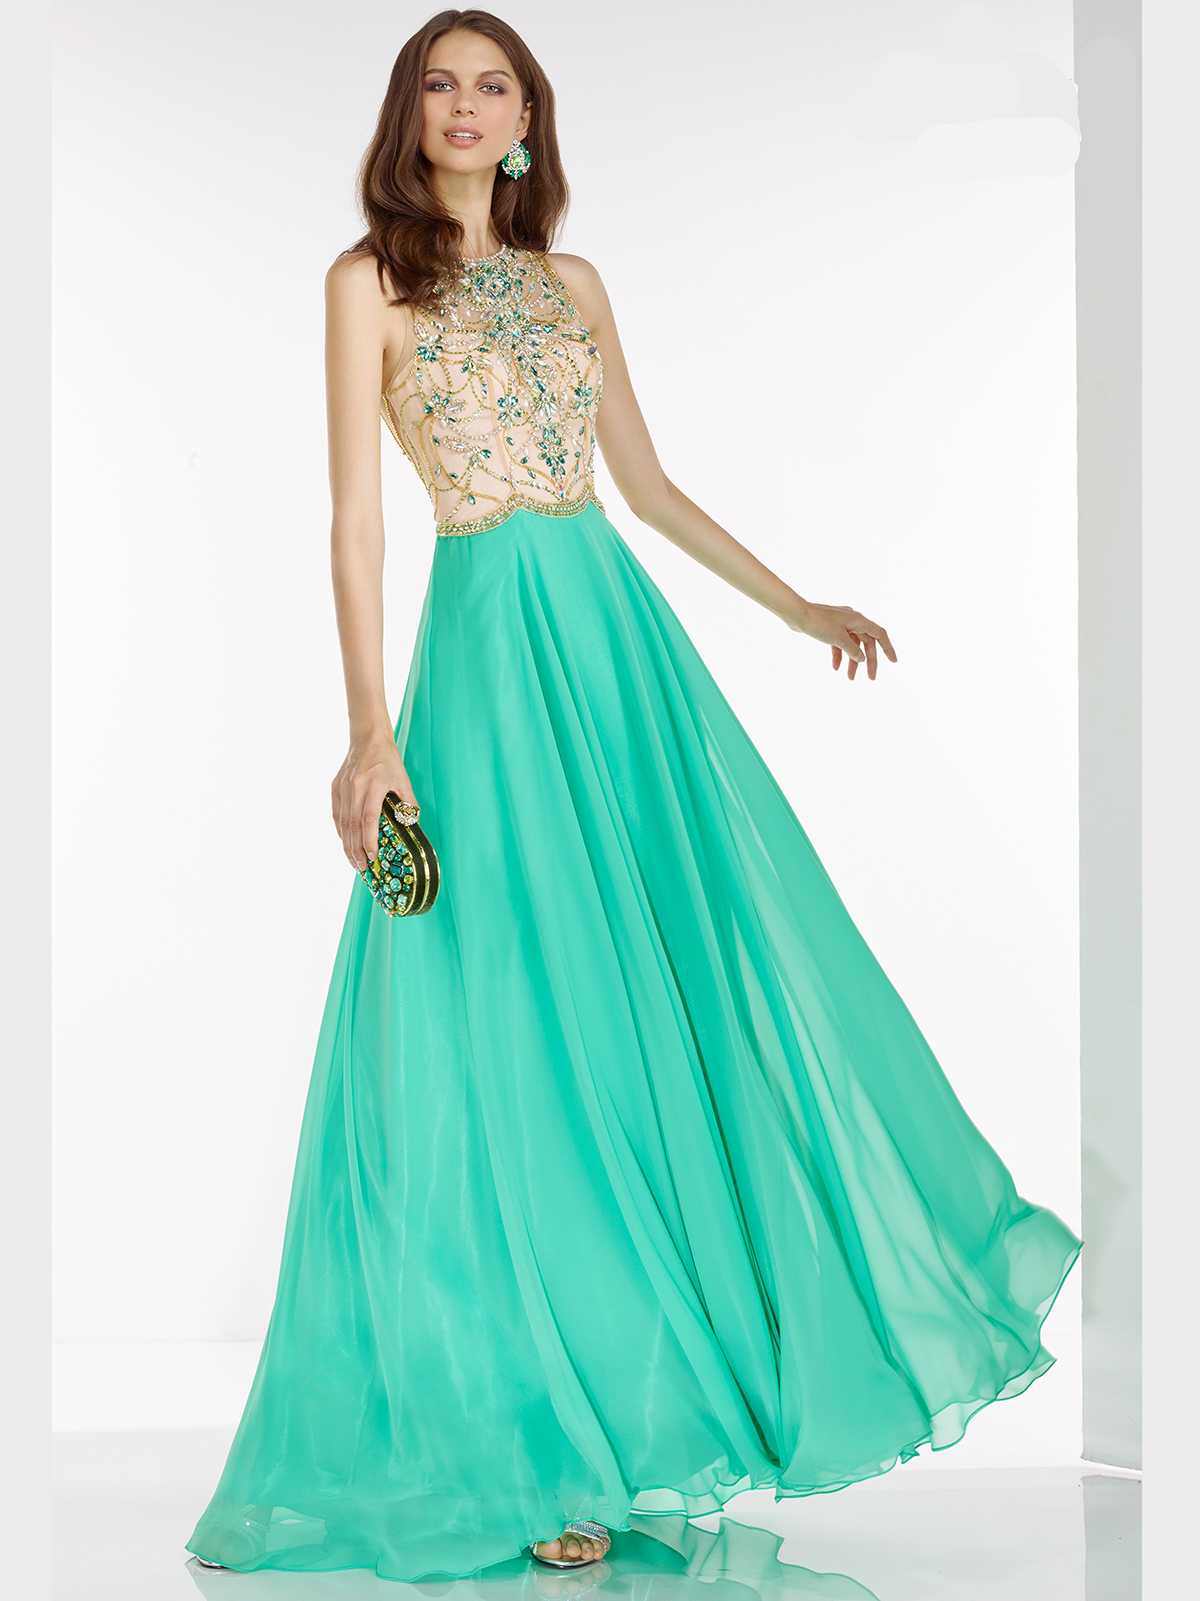 Prom dresses under the sea - Prom dress style